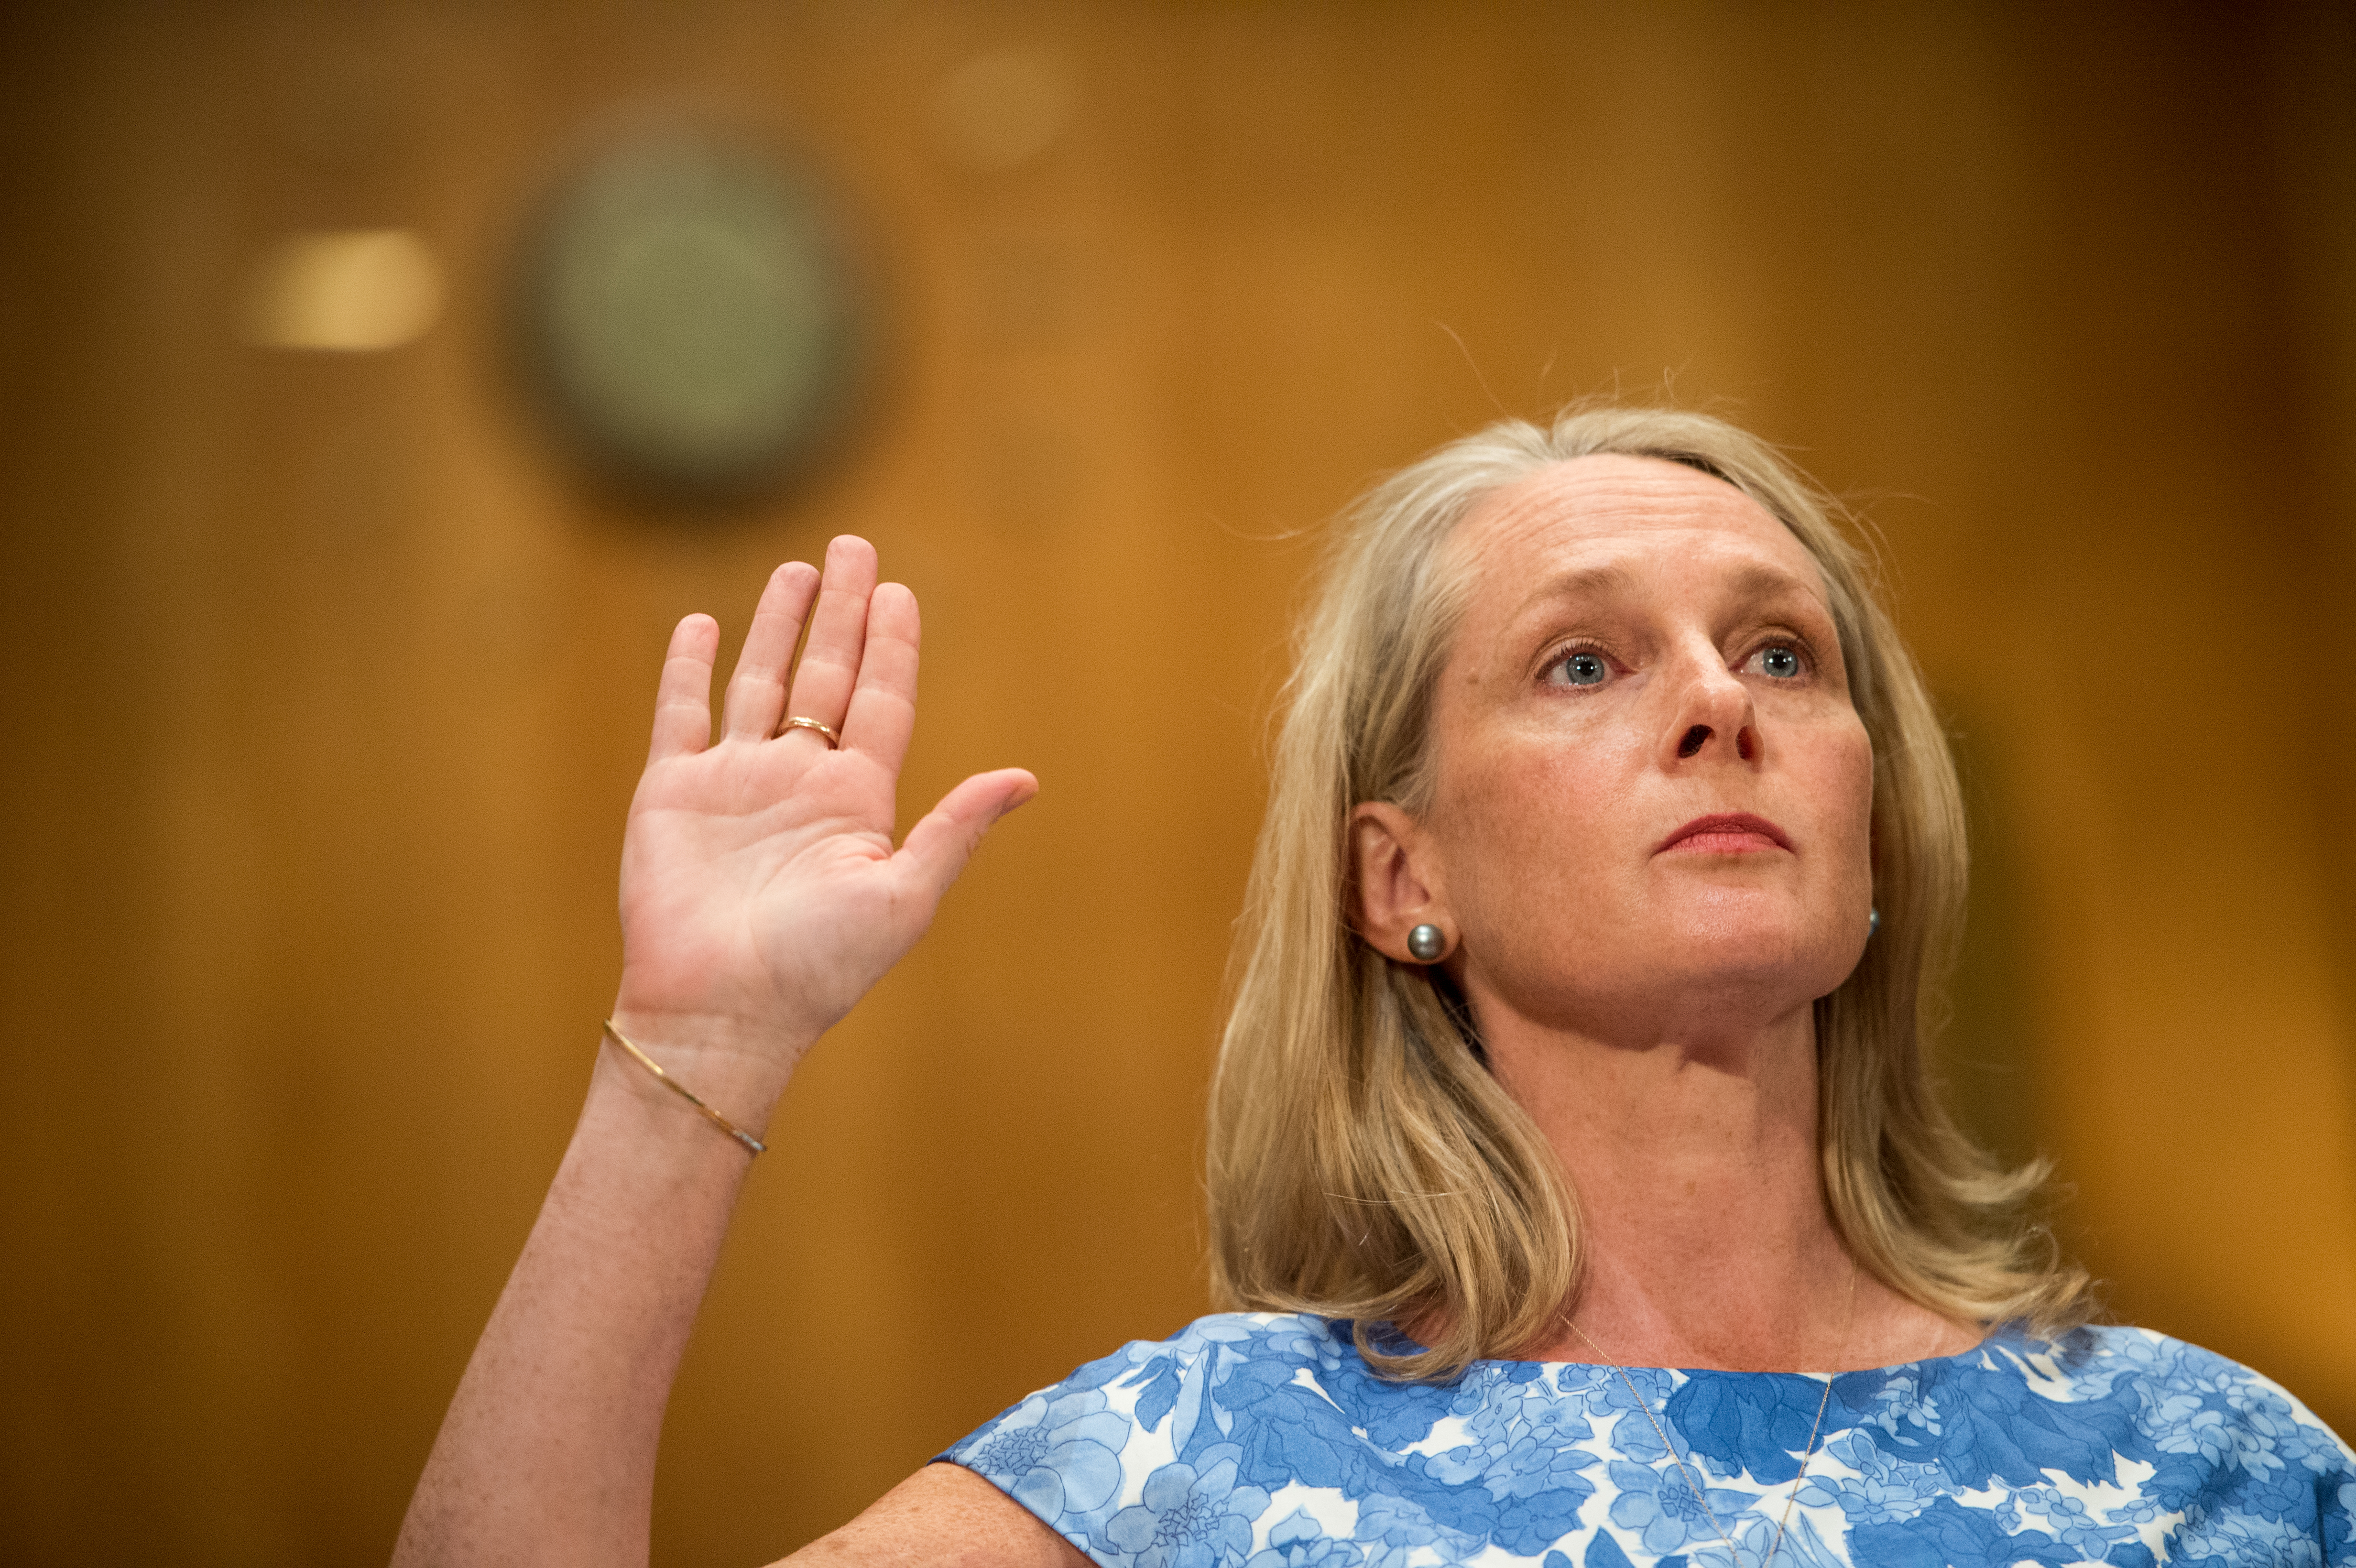 Piper Kerman, author of Orange is the New Black: My Year in a Women's Prison, is sworn in before testifying during the Senate Homeland Security and Governmental Affairs Committee hearing on  Oversight of the Bureau of Prisons: First-Hand Accounts of Challenges Facing the Federal Prison System  on Tuesday, Aug. 4, 2015.